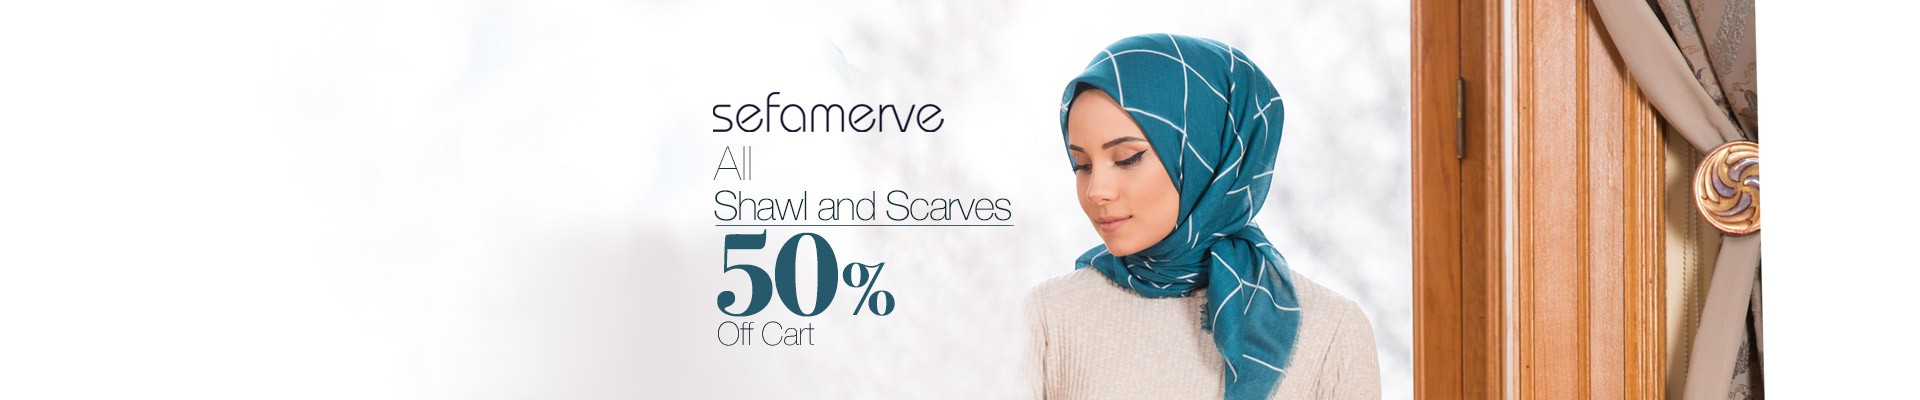 All Shawl and Scarves 50% Off Cart